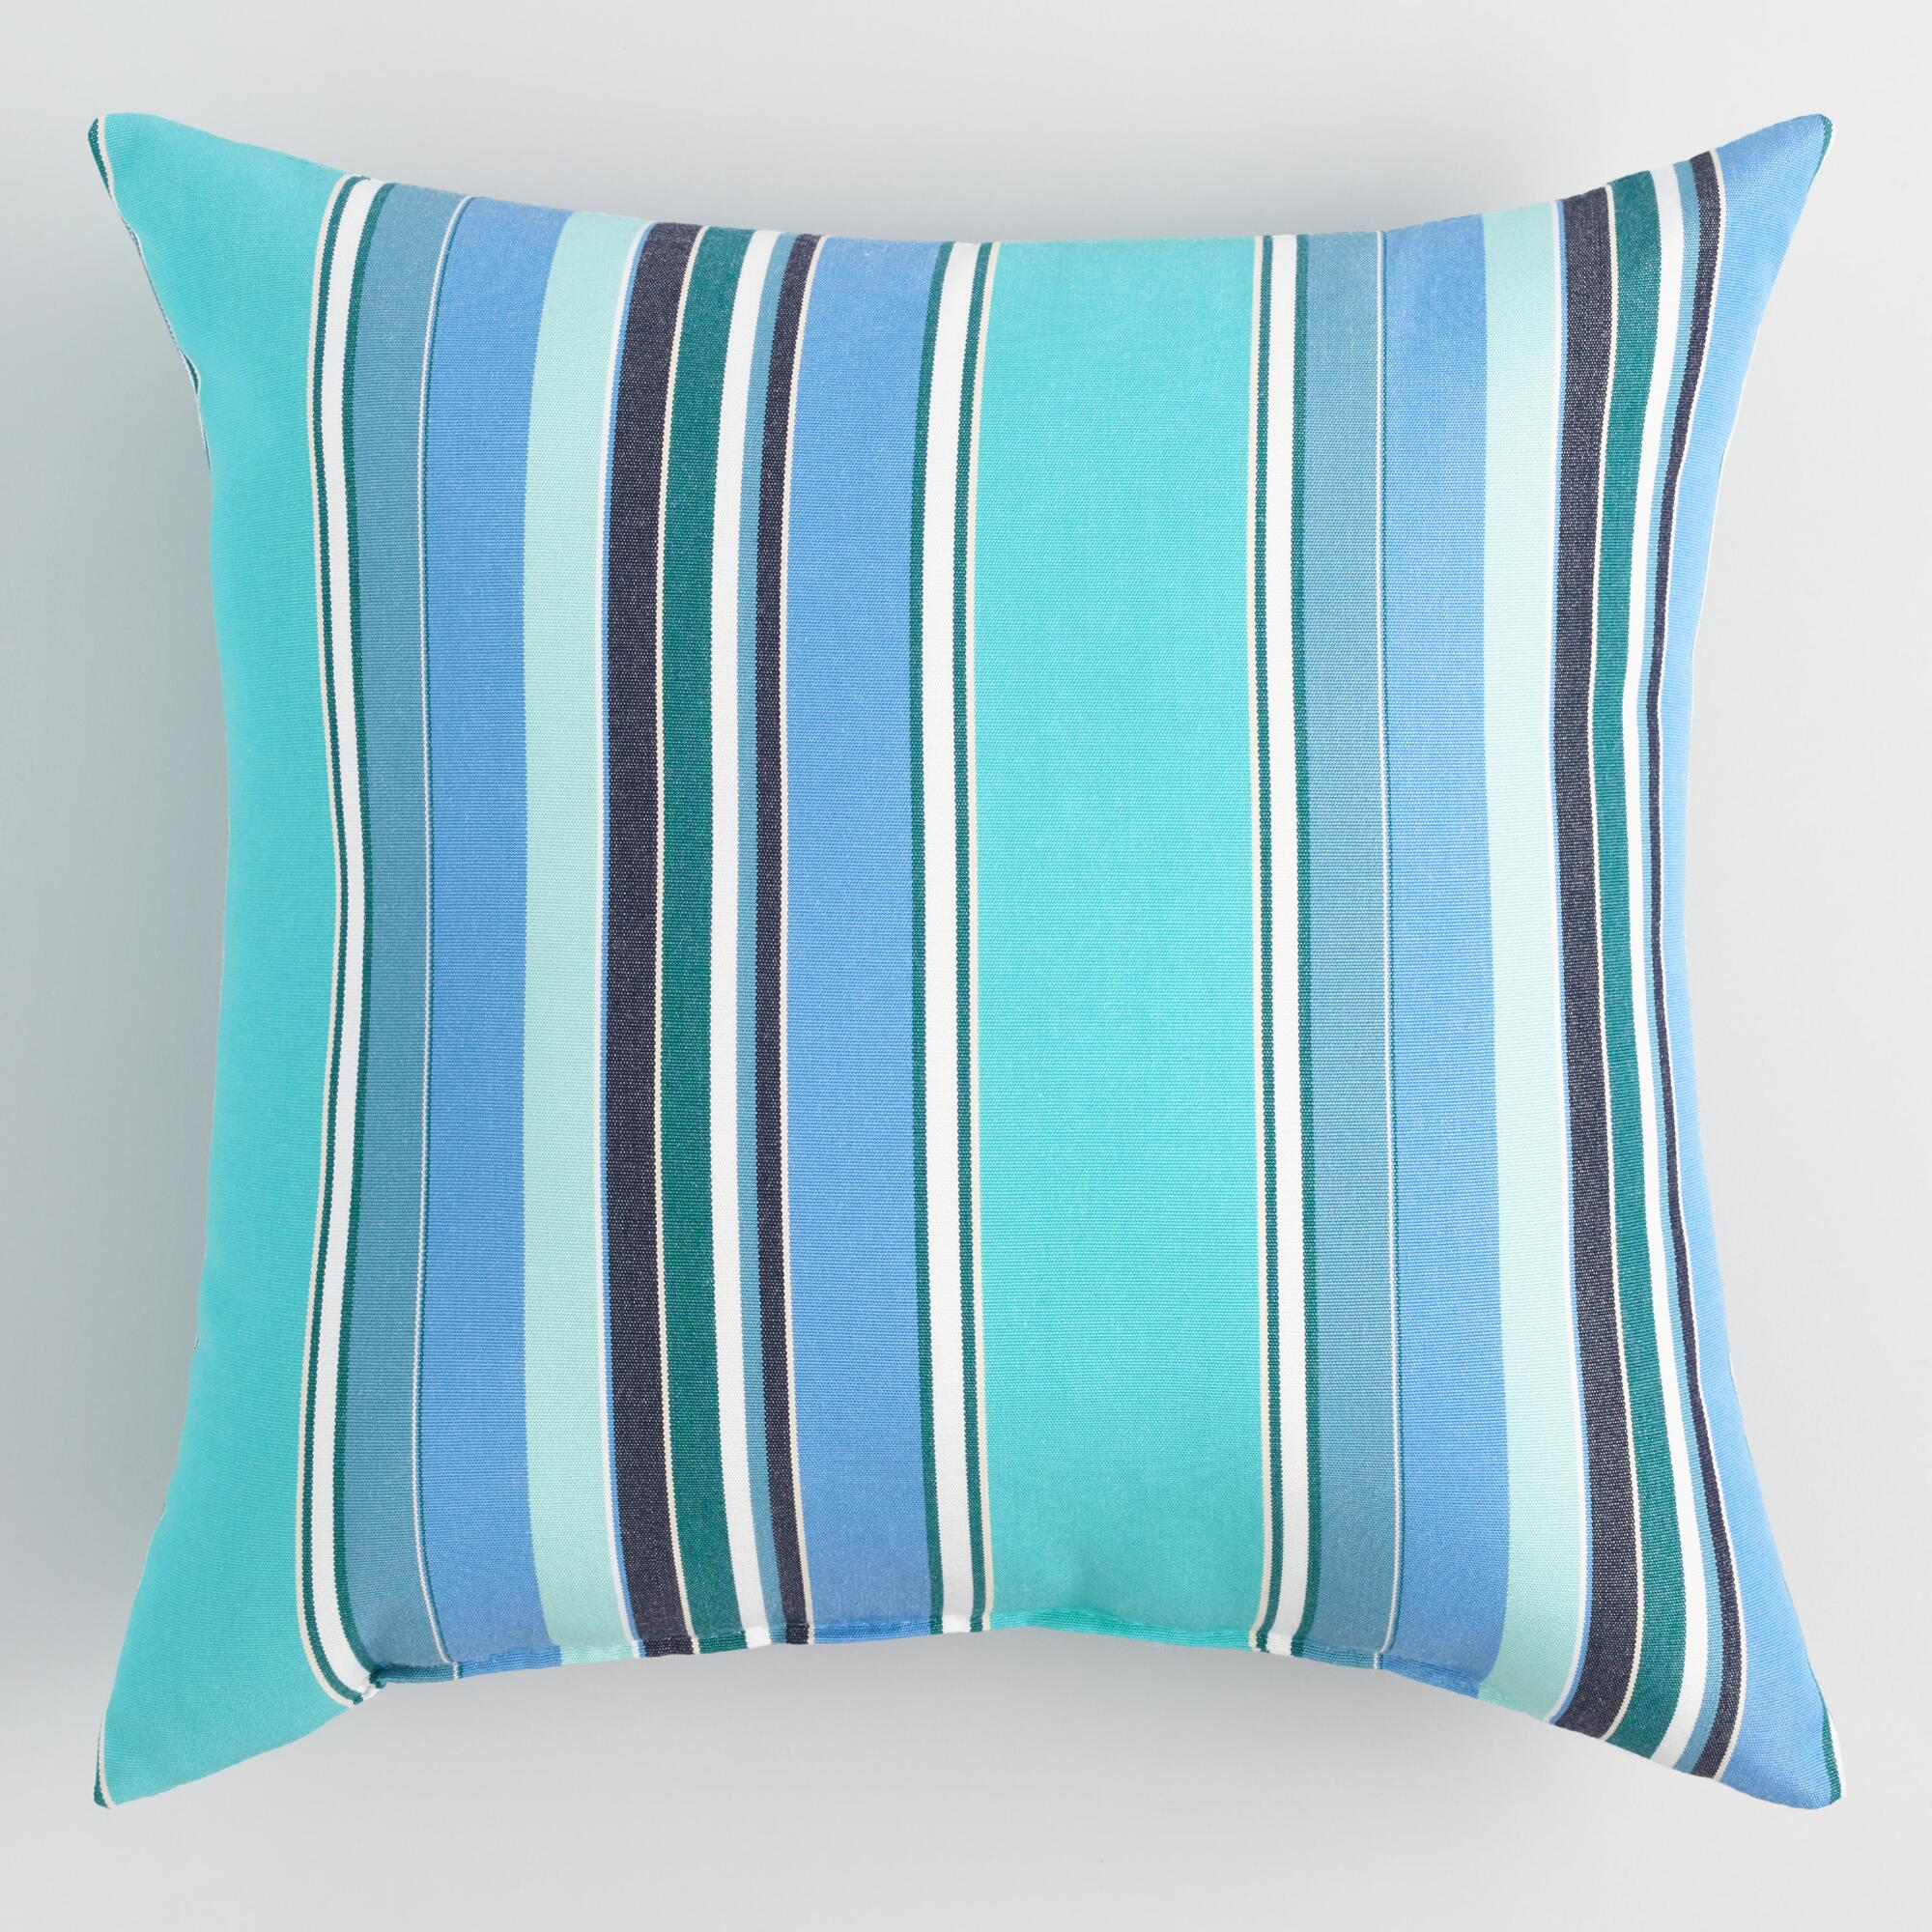 Decorative Pillows With Stripes : Sunbrella Oasis Dolce Stripe Outdoor Throw Pillow World Market